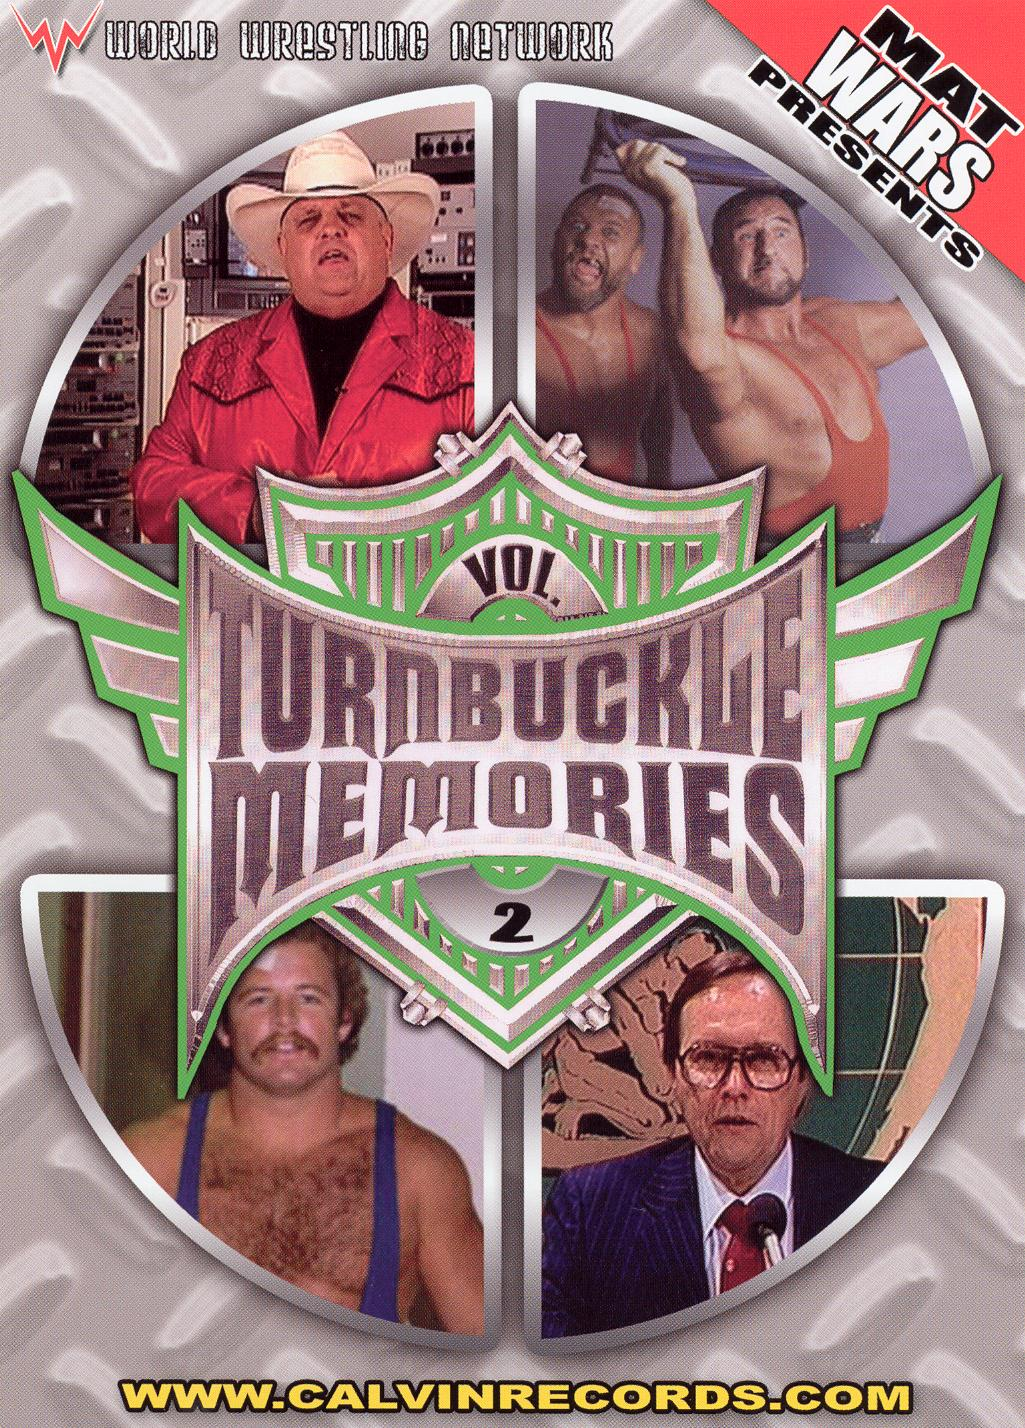 Turnbuckle Memories, Vol. 2